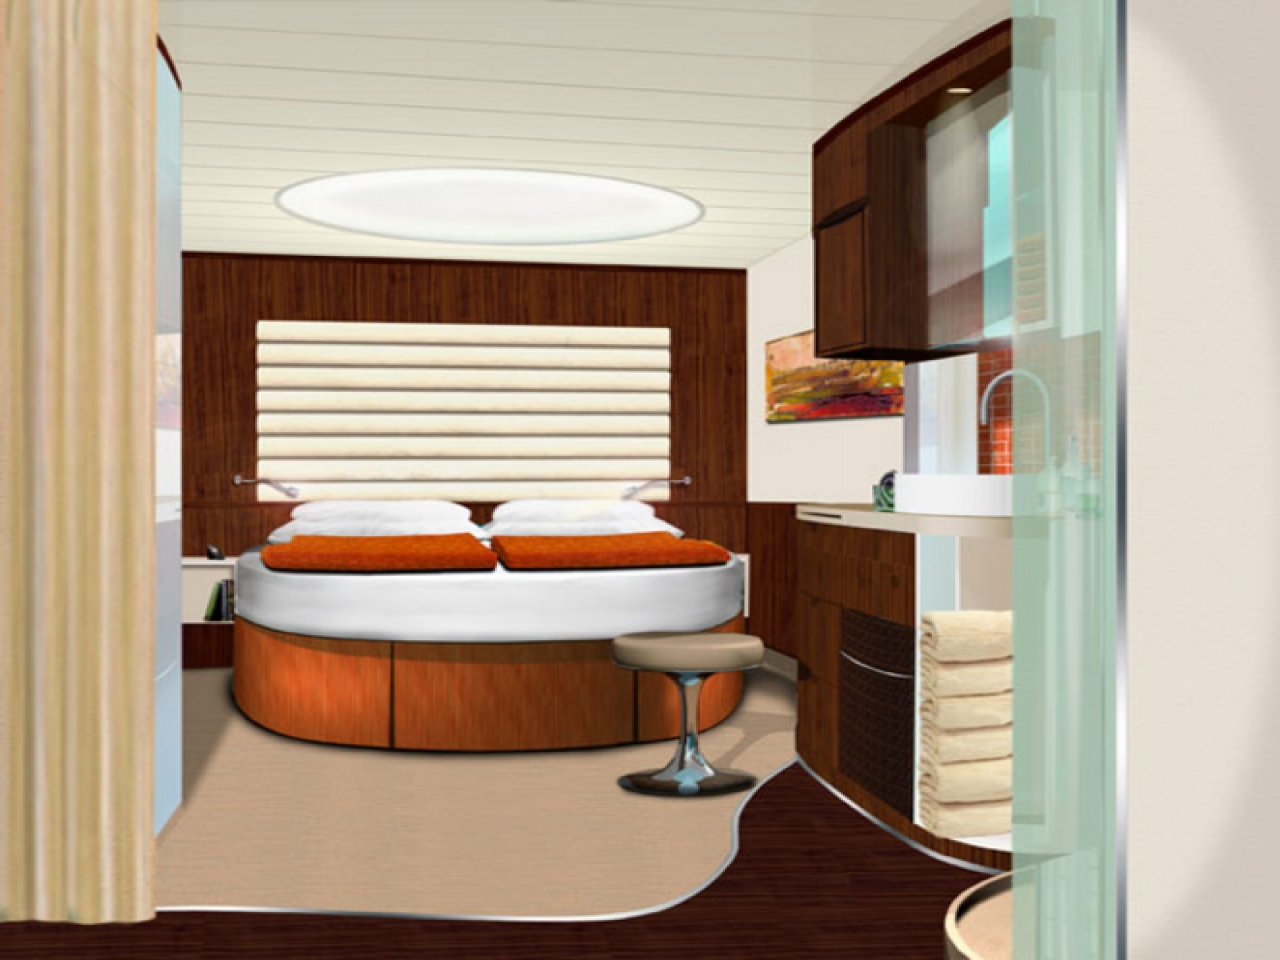 pictures of ships cabins - photo #34